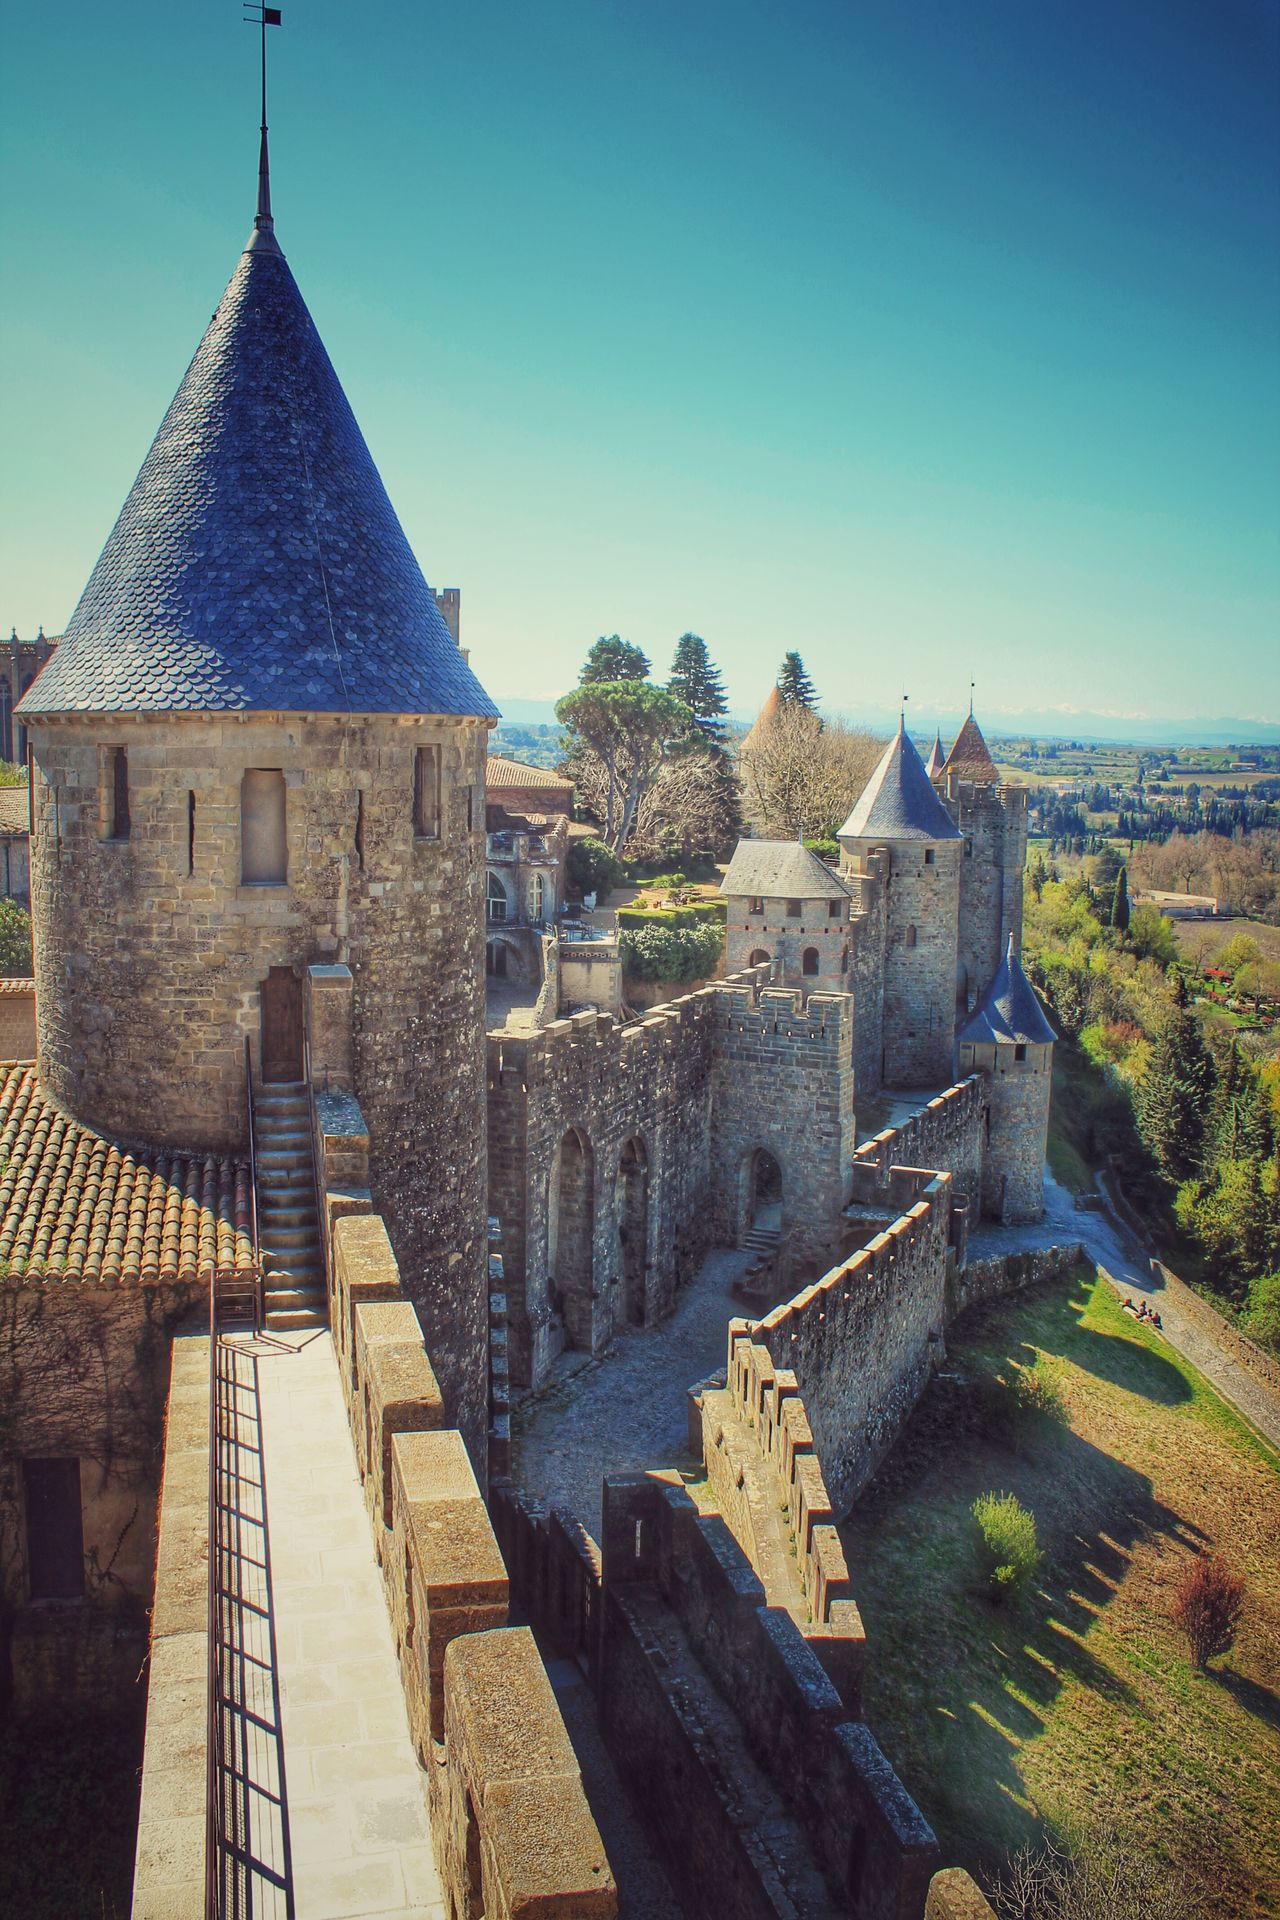 Architecture Carcassonne Castle Famous Place Fortress France Historic History Medieval Old Old Ruin Ramparts Sightseeing The Past Tower World Heritage